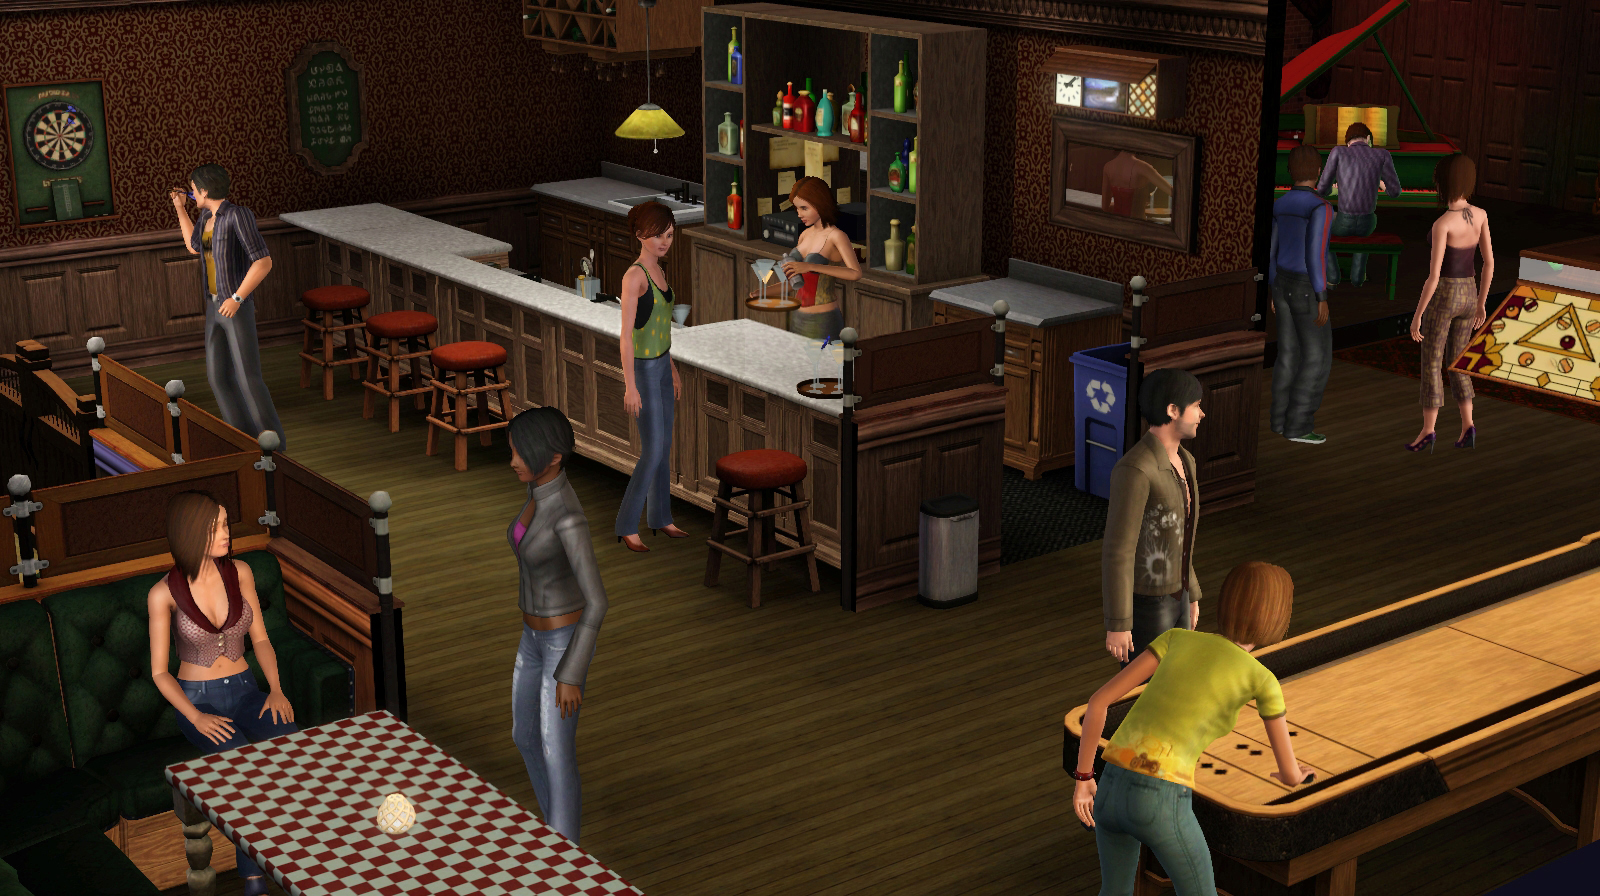 The Sims 3 Late Night screenshot